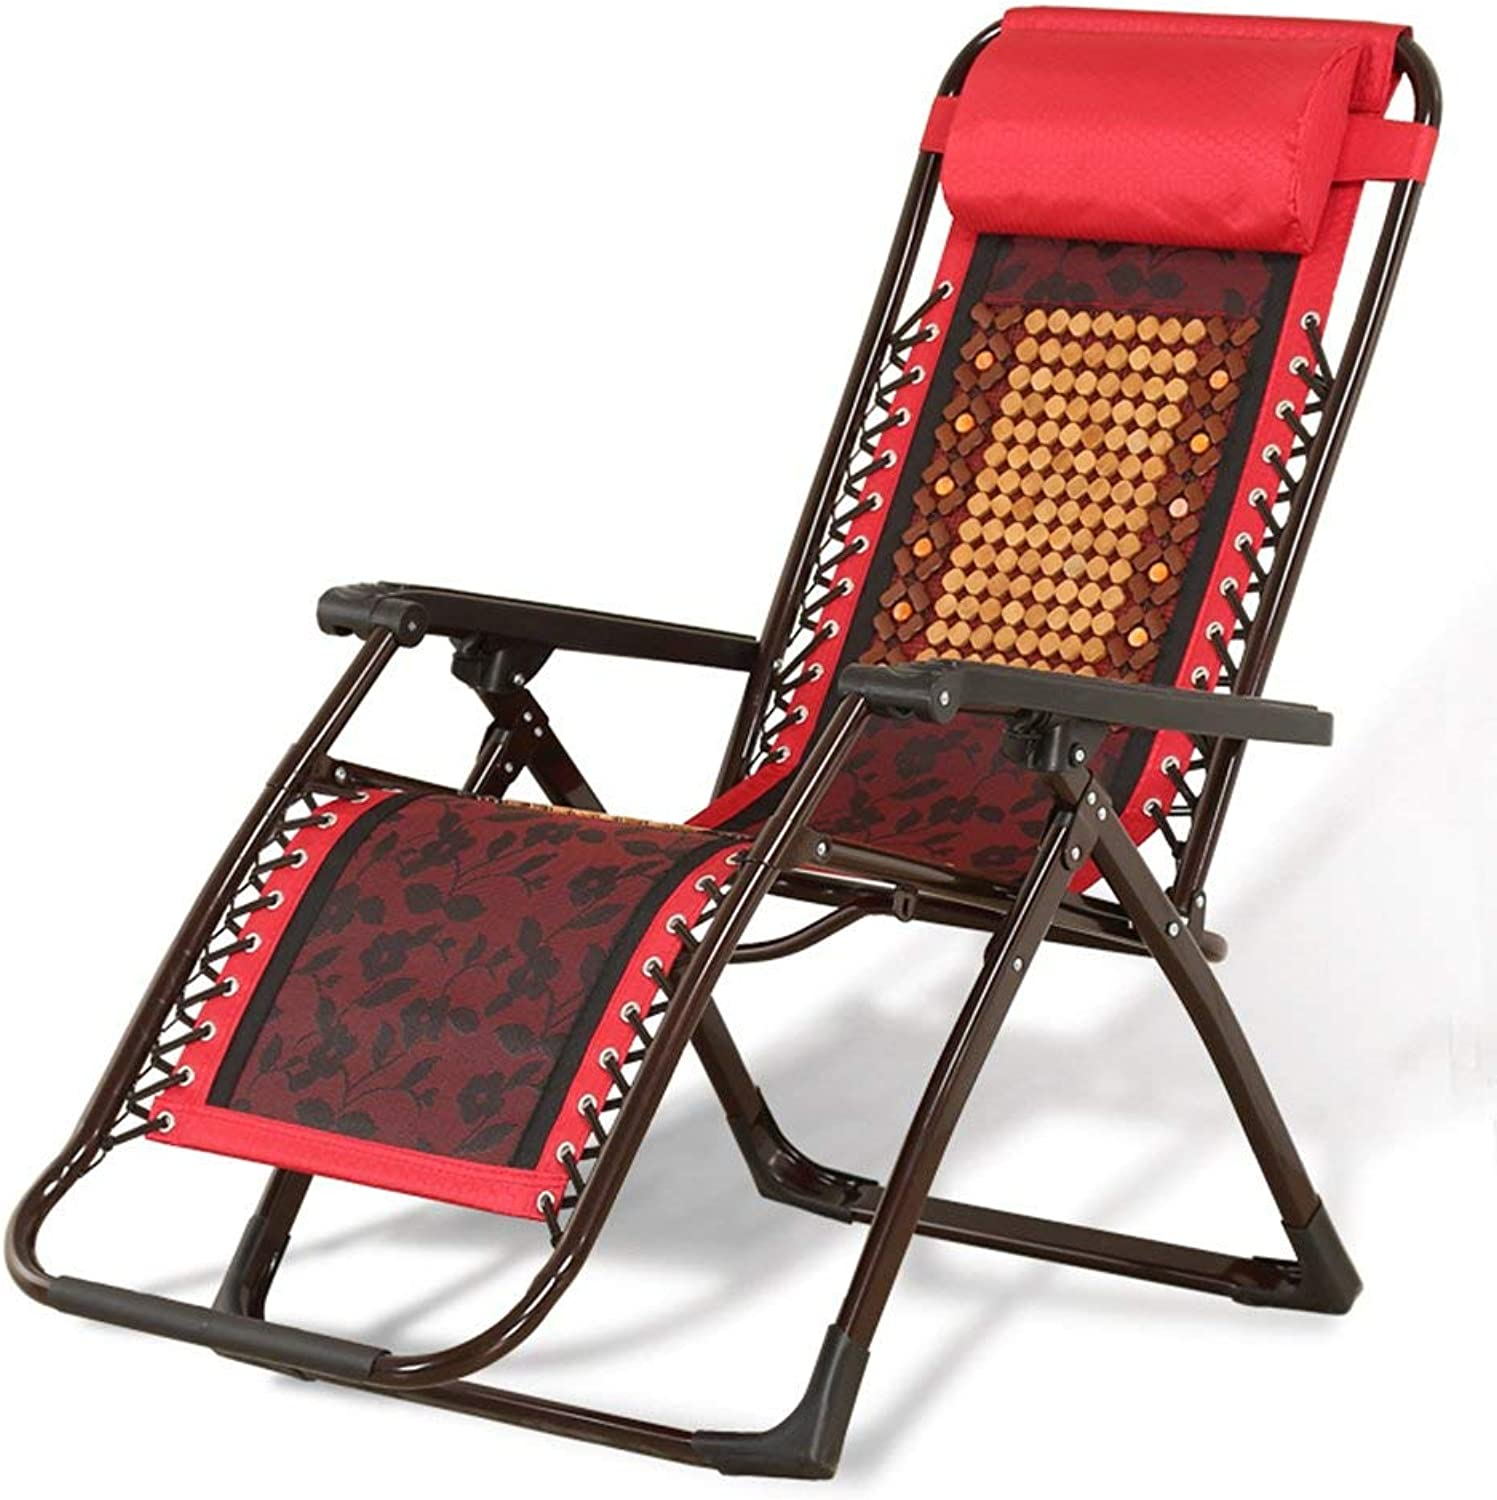 Balcony Casual Lounge Chairs Folding Chair Office Siesta Chair Armchair Sun Loungers Garden Chairs Summer Beach Chairs Removable Headrest (color   Red)